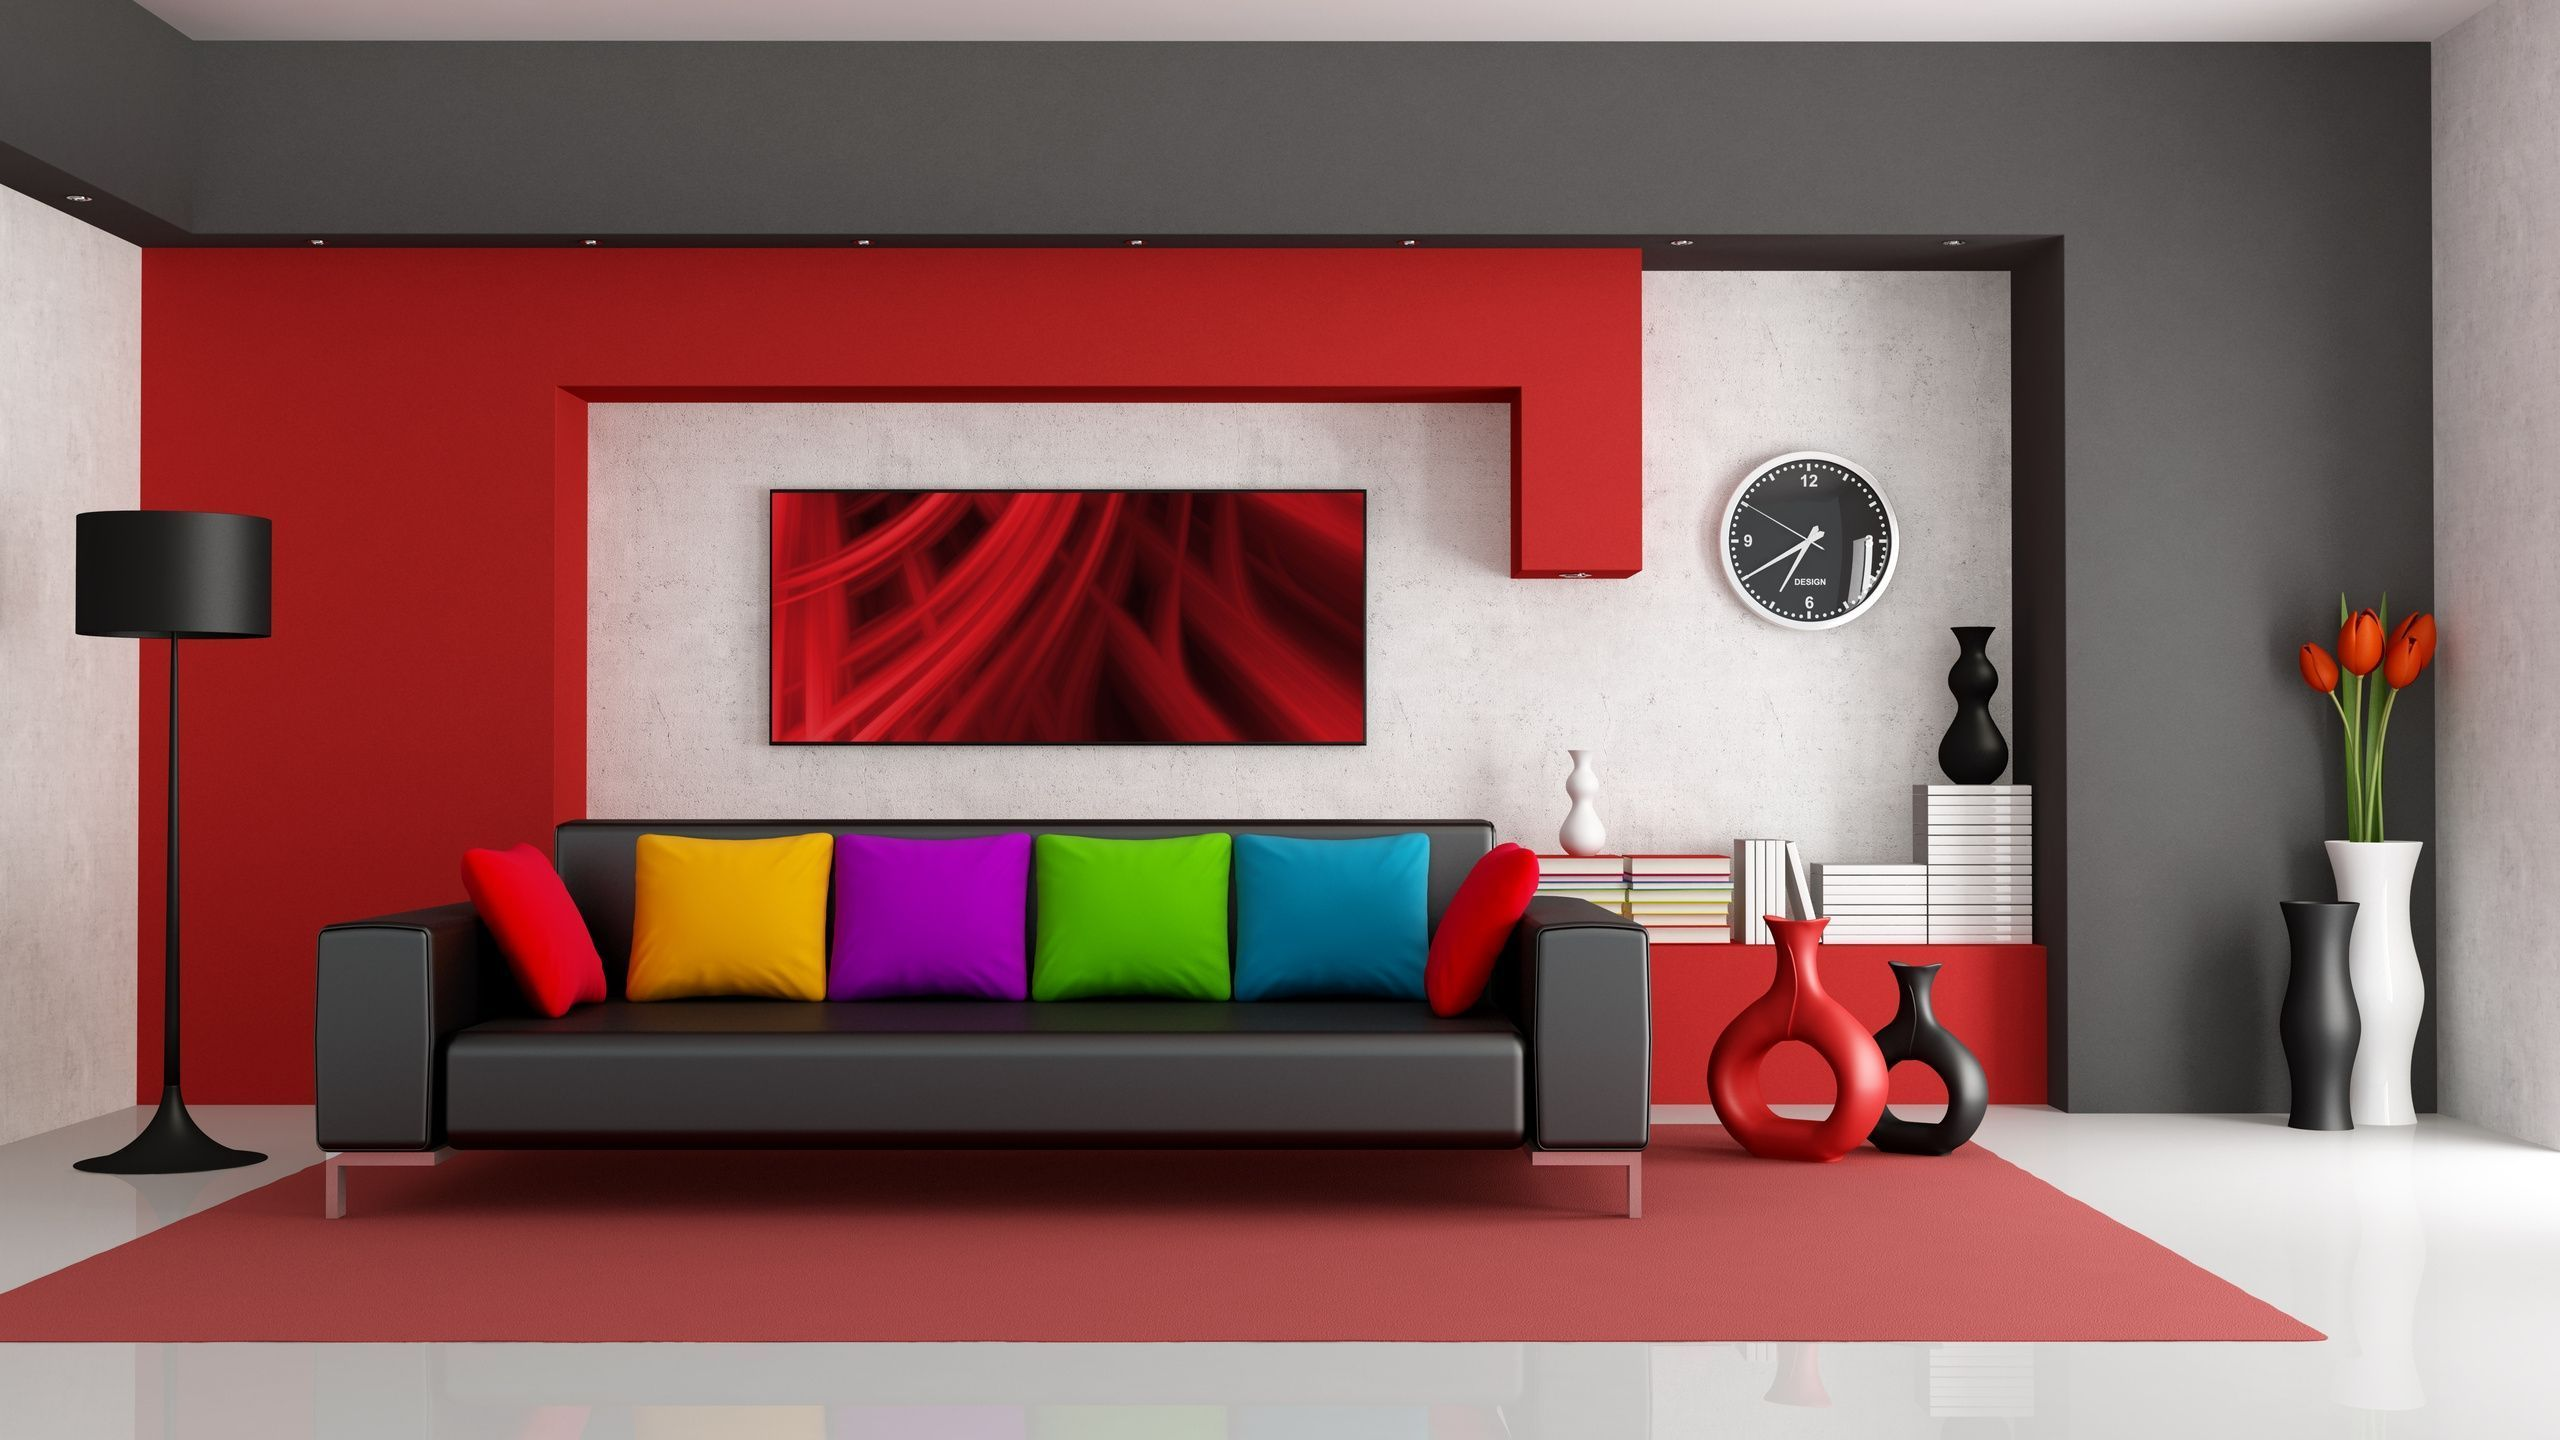 Living Room Room Furniture Ideas maverick home decor ideas outstanding black and red living room furniture 2560 x 1440 302 kb jpeg hom